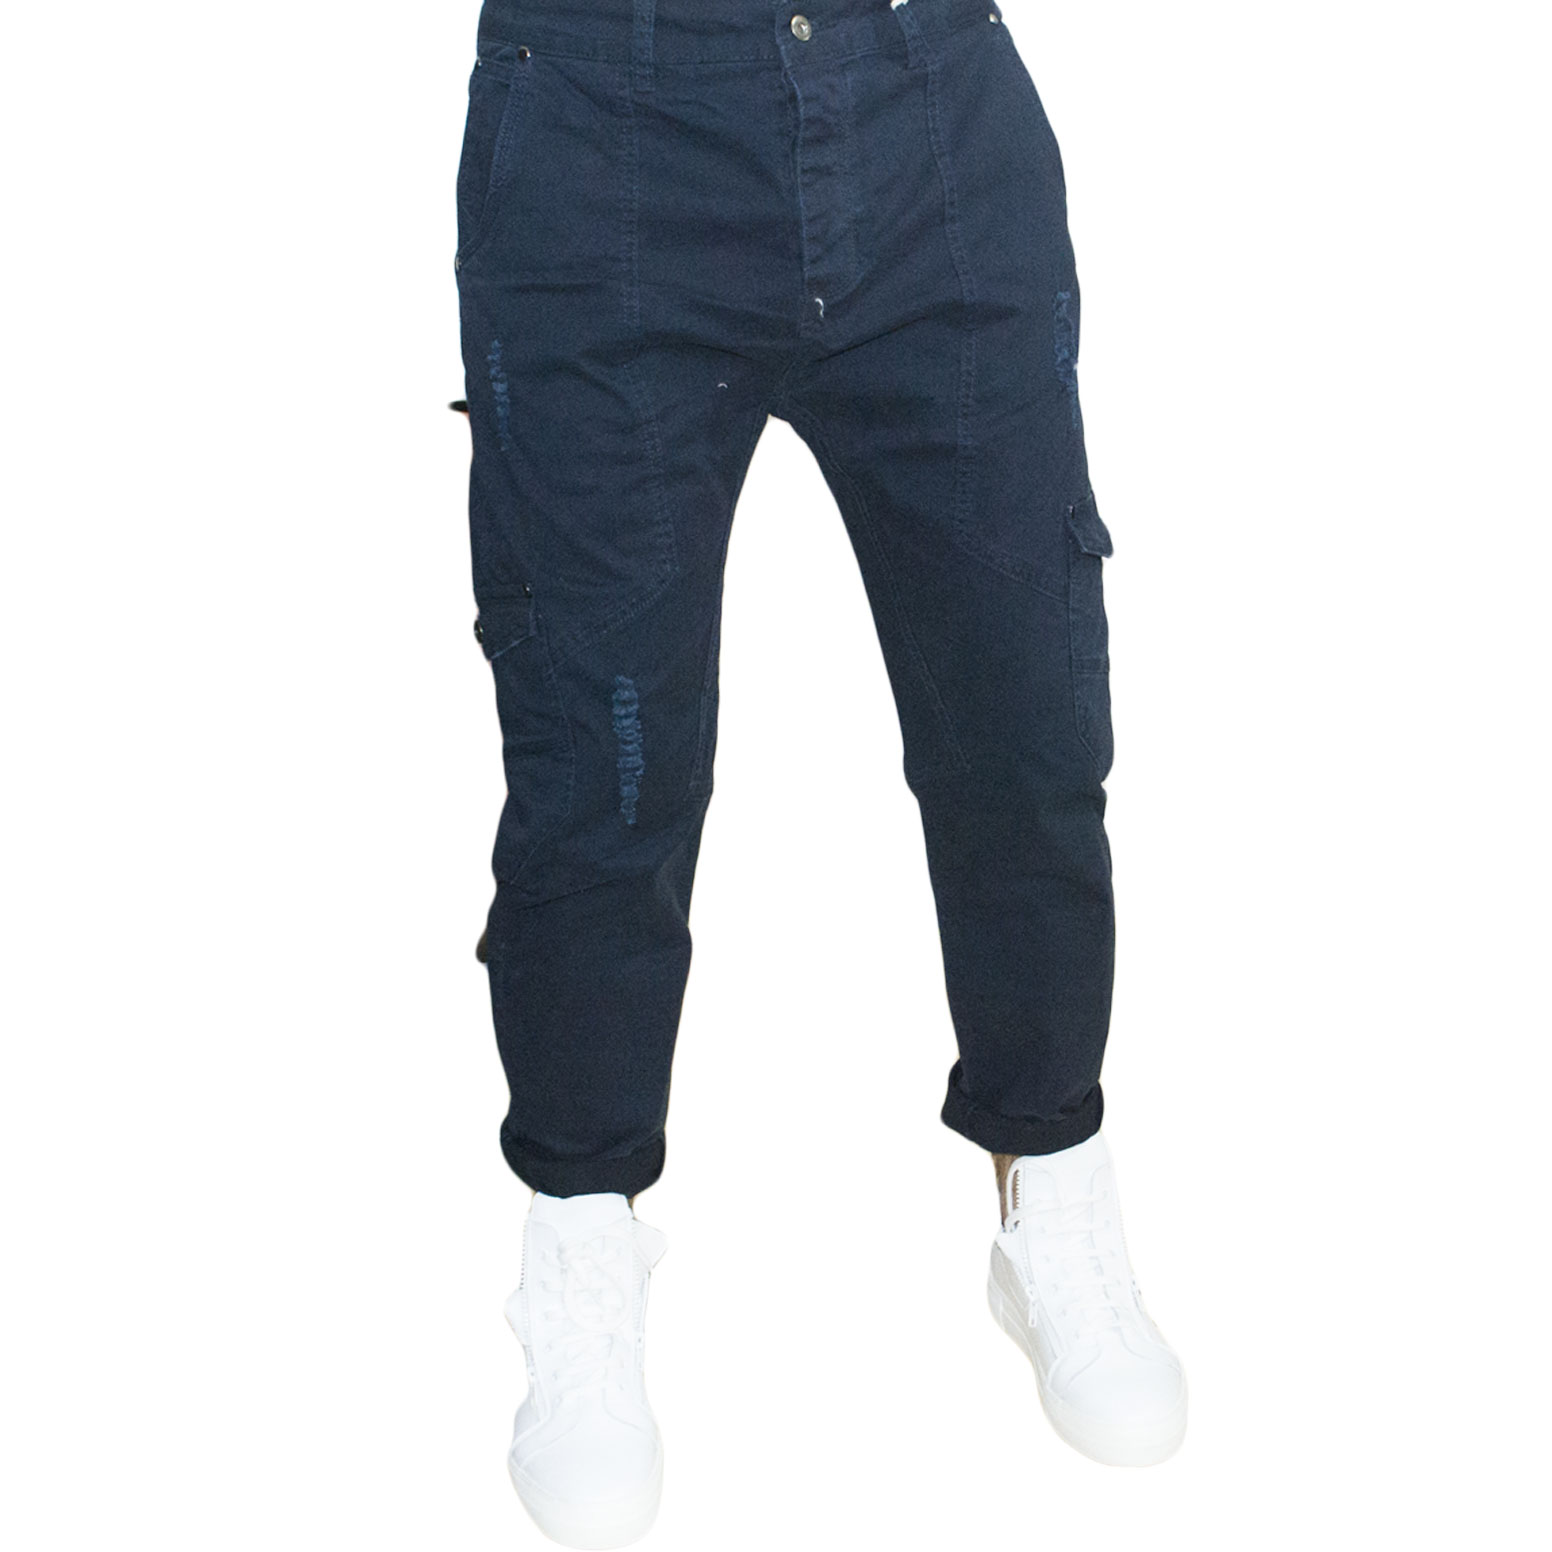 pantaloni uomo man blu new brams stracciato moda made in italy.